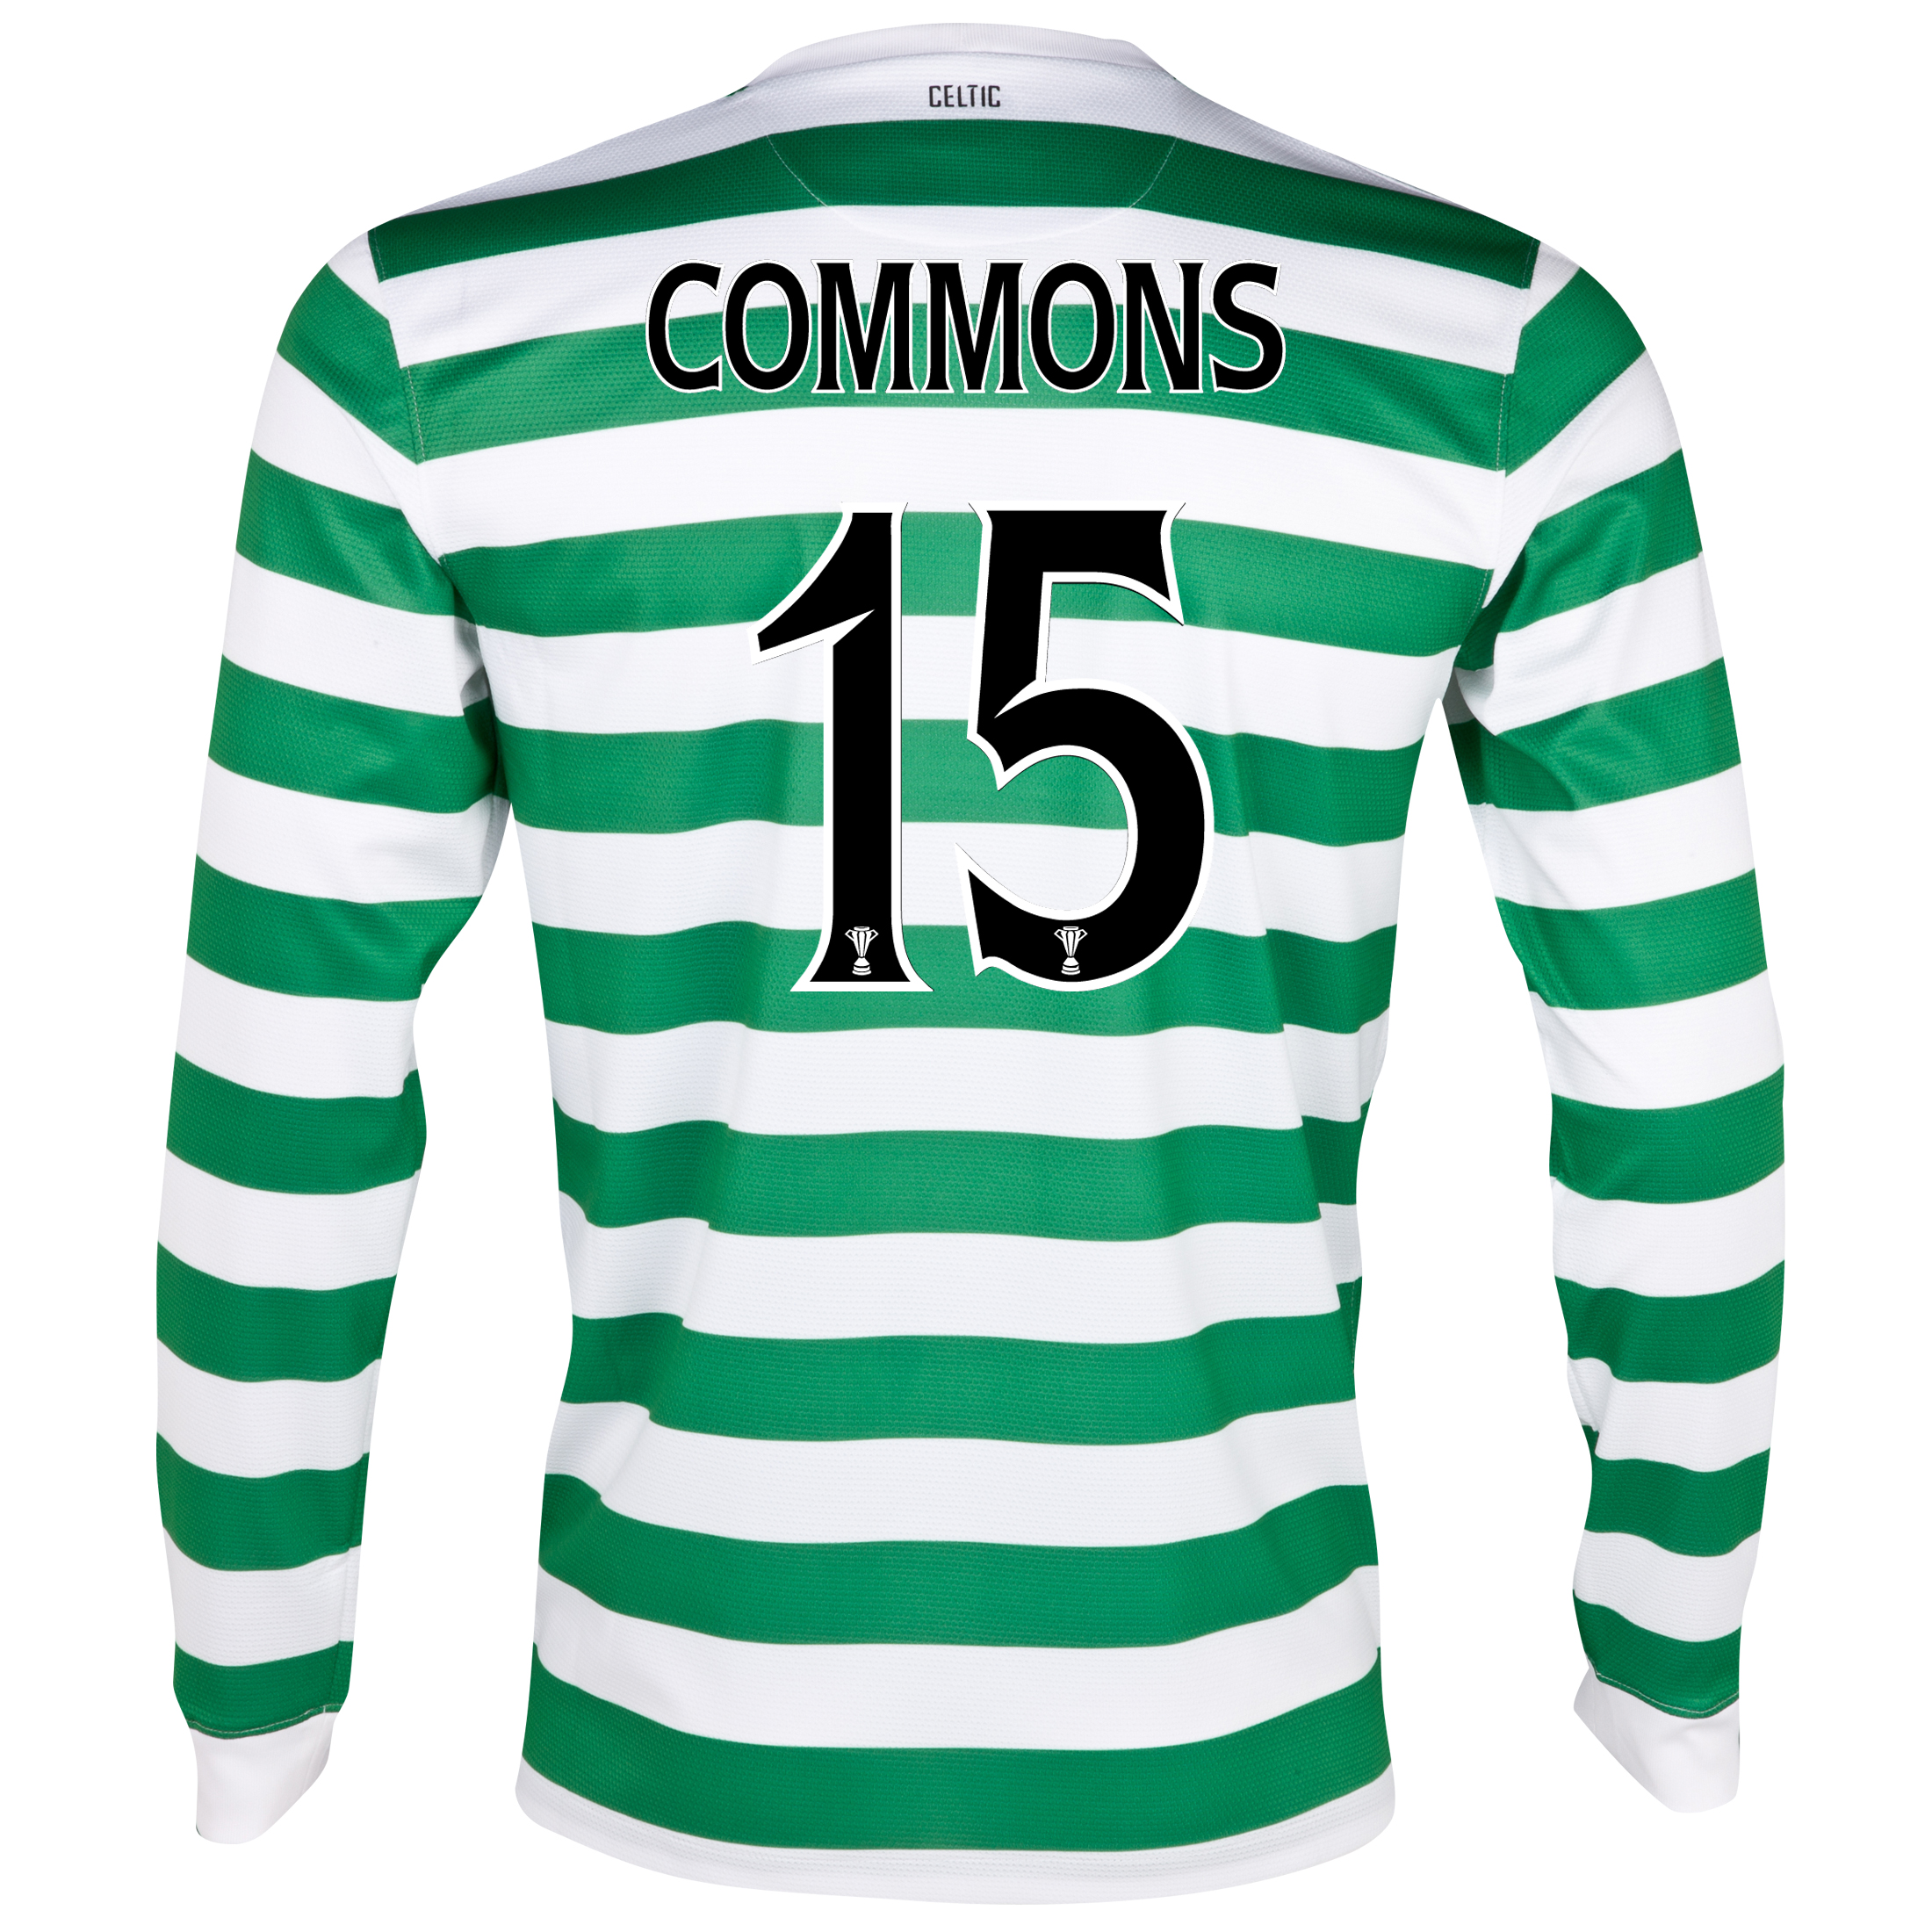 Celtic Home Shirt 2012/13 - Long Sleeved with Commons 15 printing